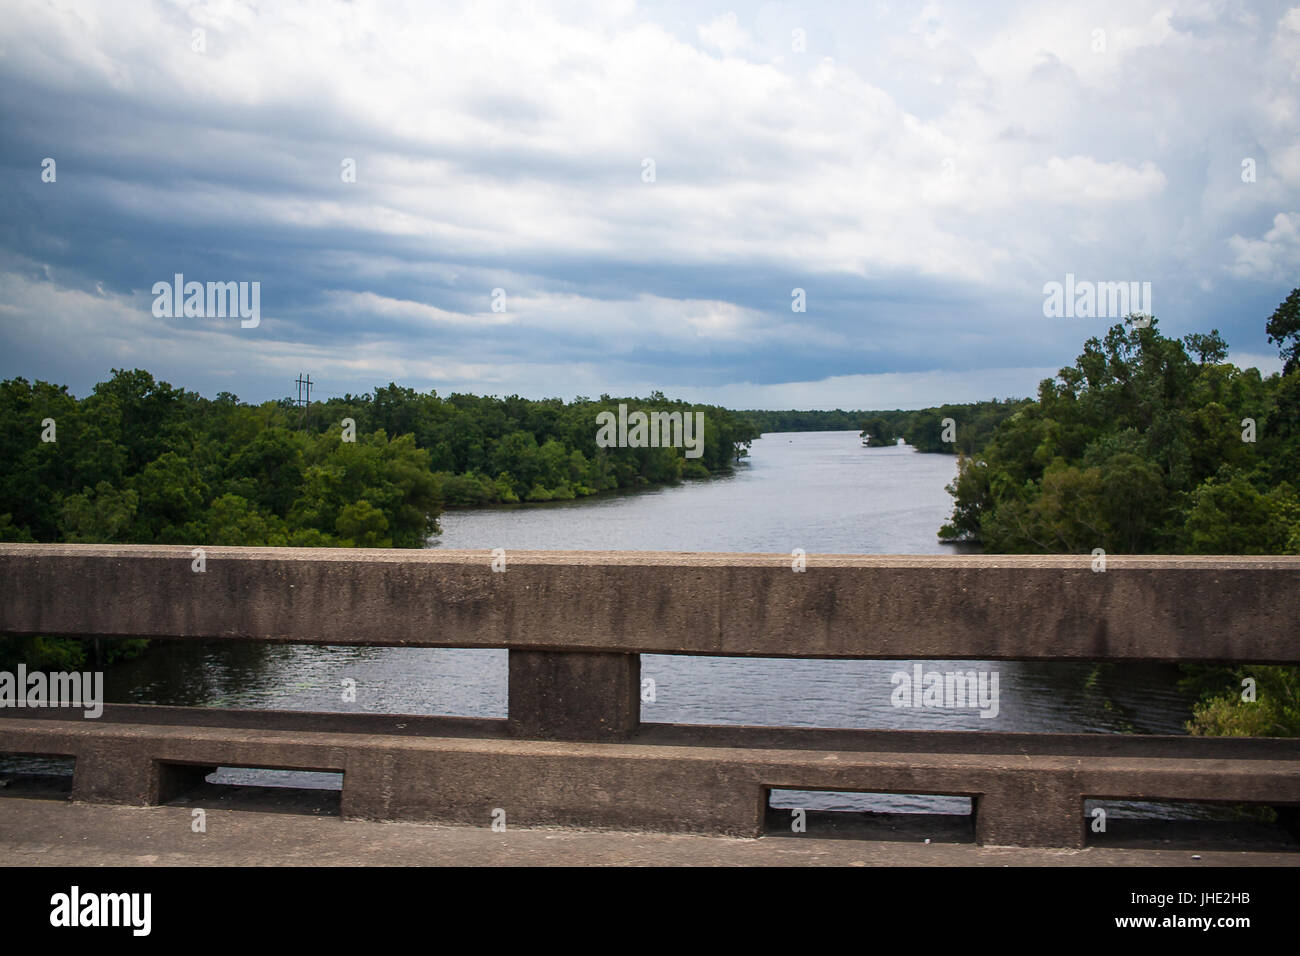 View from the Atchafalaya Basin Bridge, also known as Louisiana Airborne Memorial Bridge, the third longest bridge - Stock Image